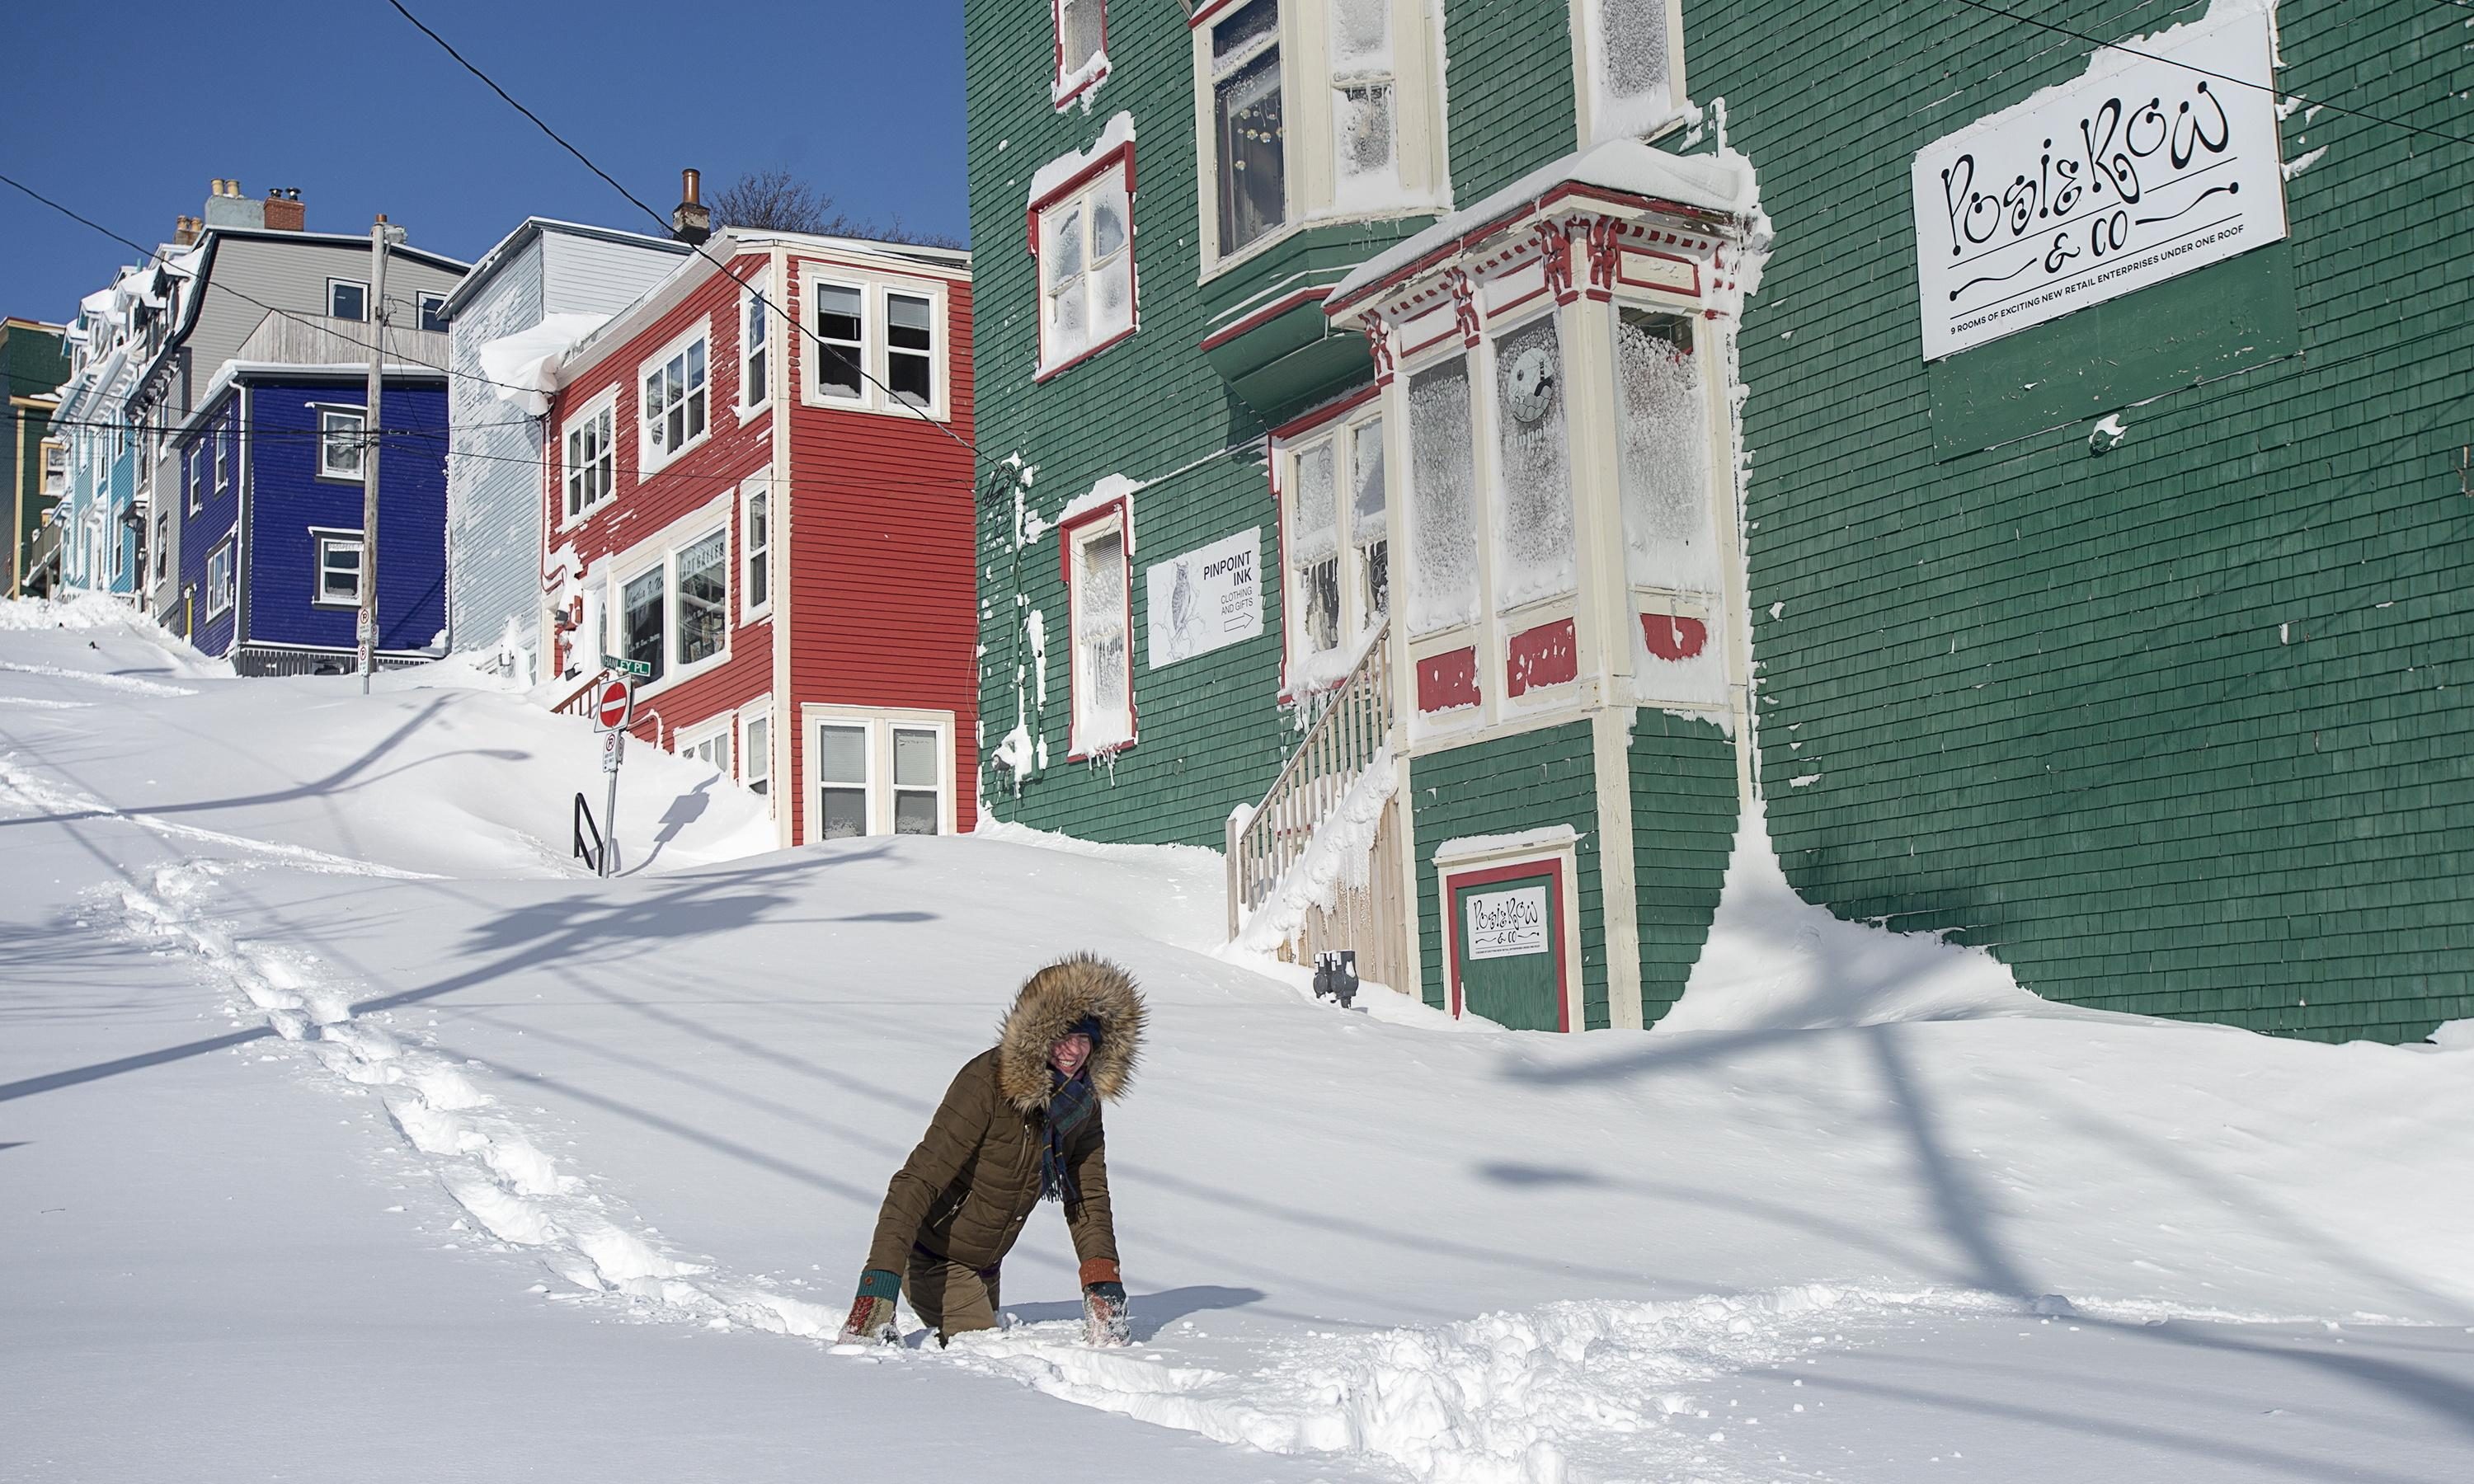 'Snowmageddon': cleanup begins after record Newfoundland storm